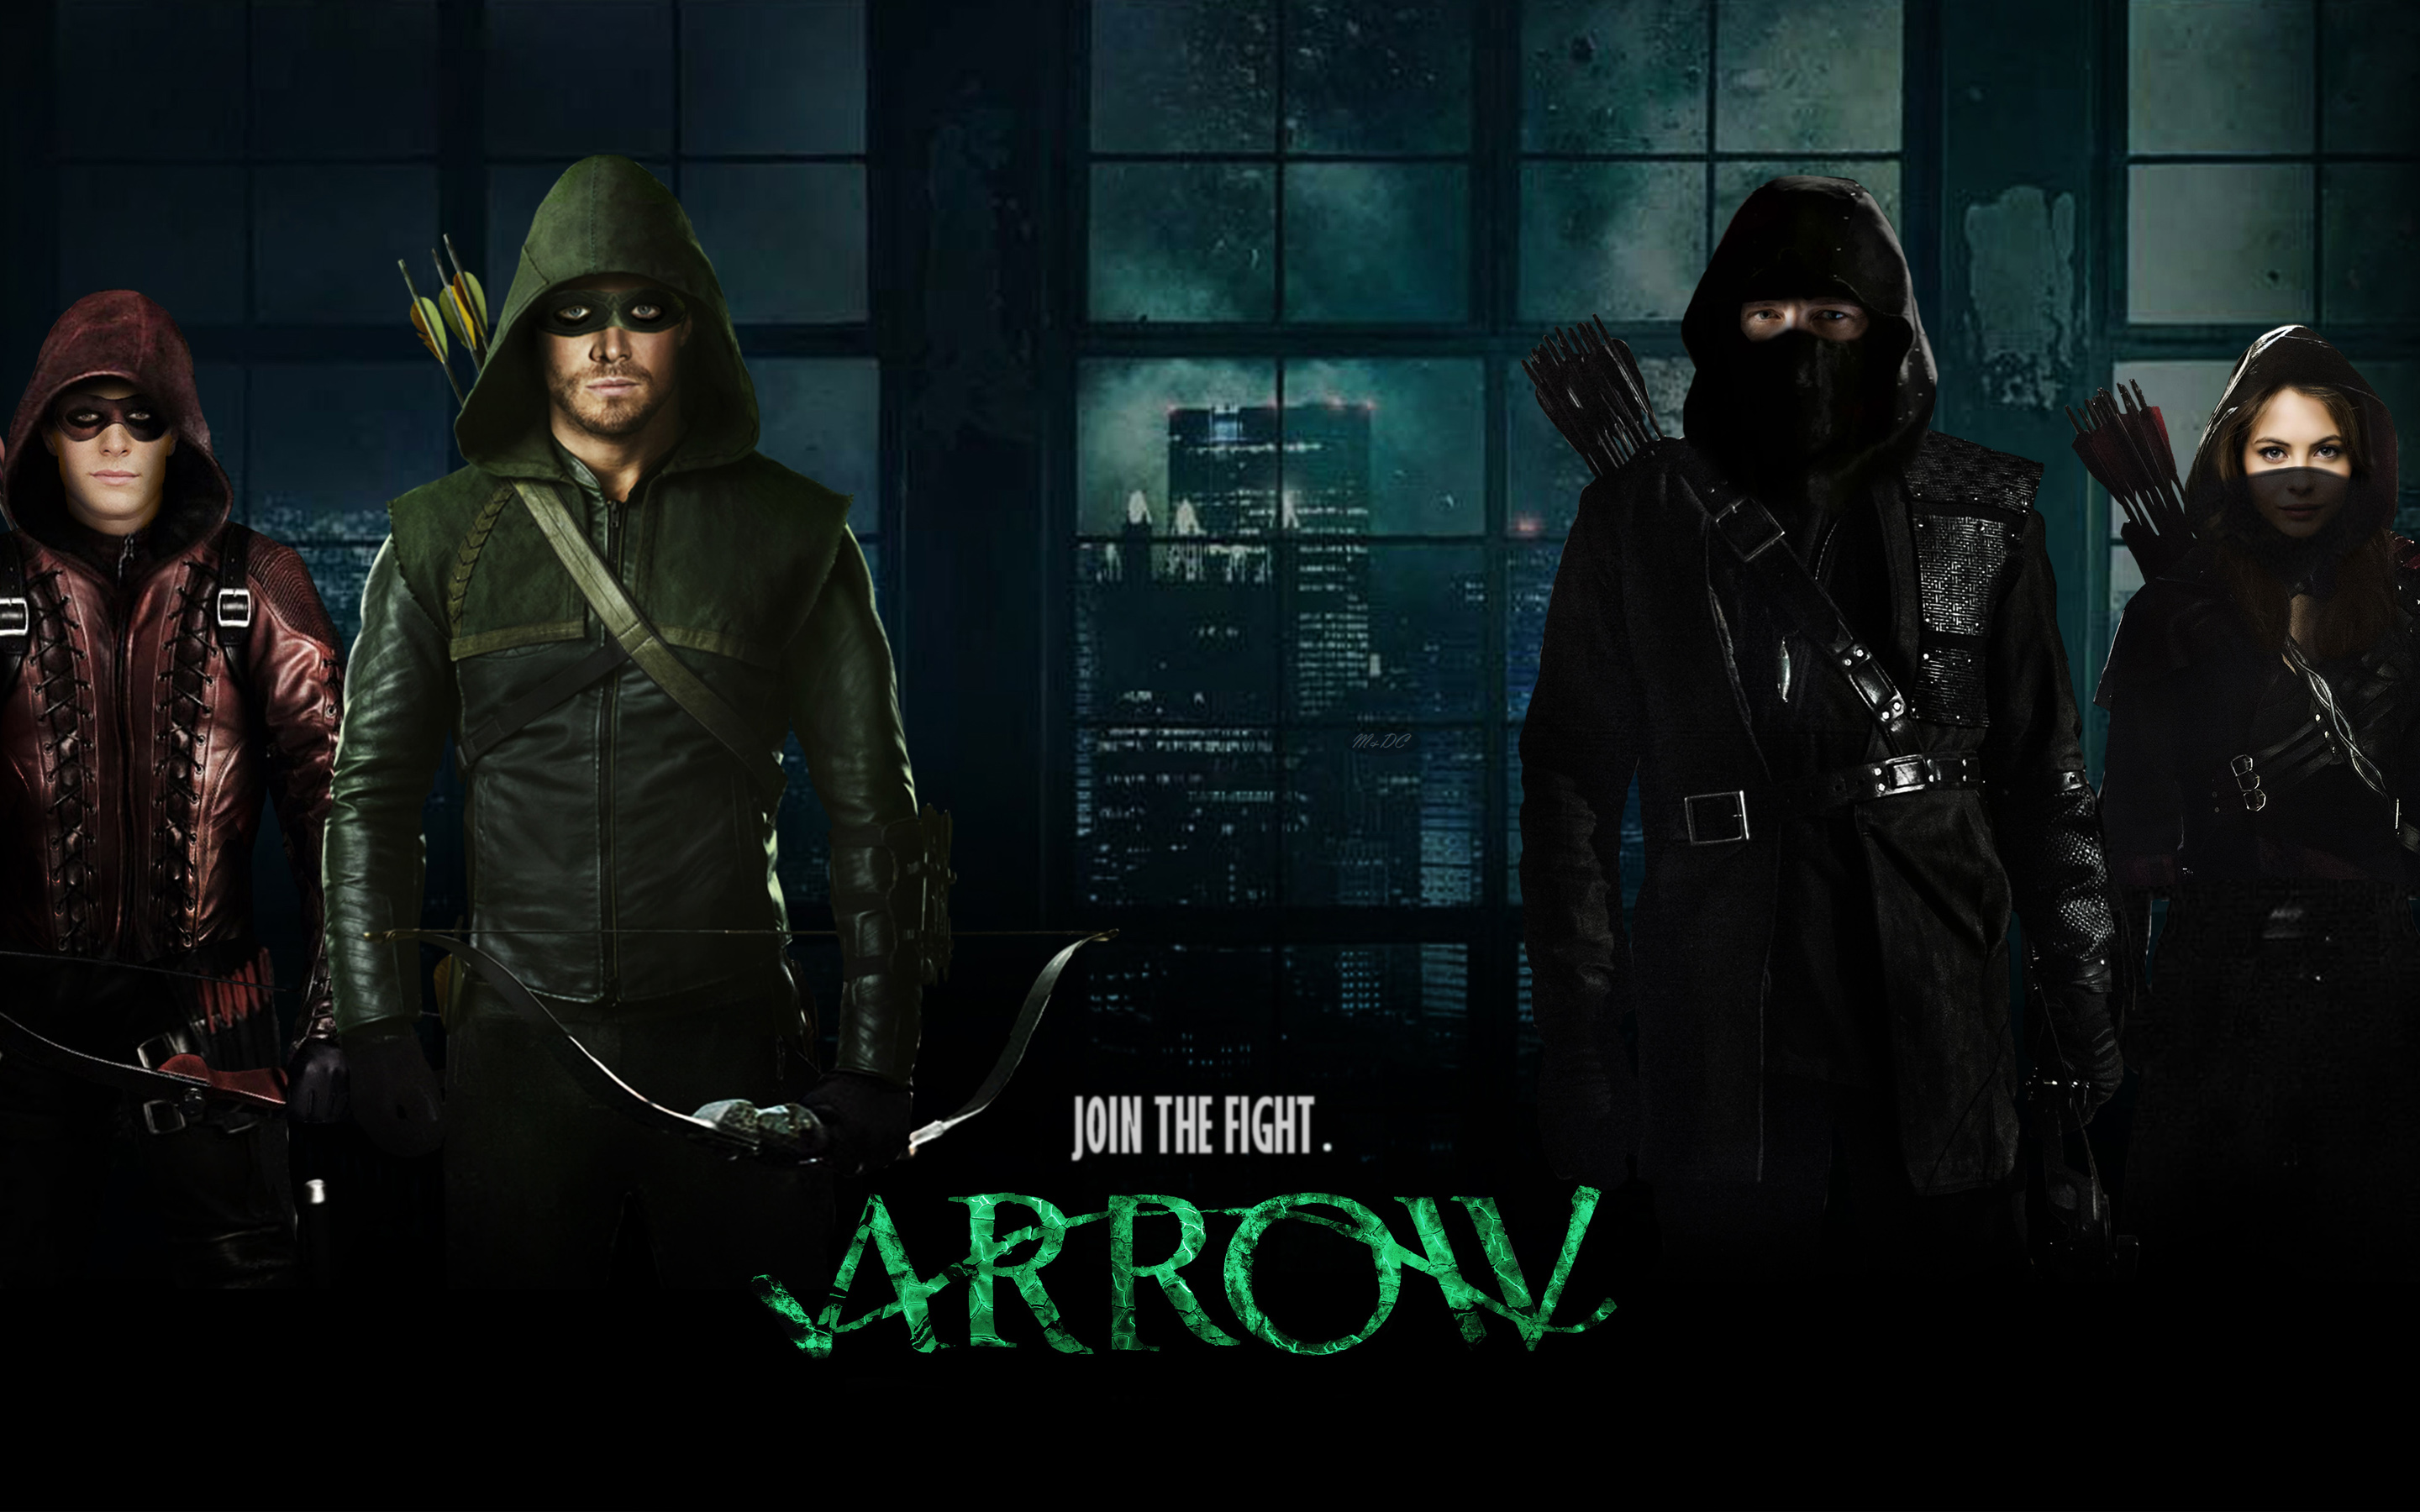 Arrow Season 3 2014 1978.75 Kb